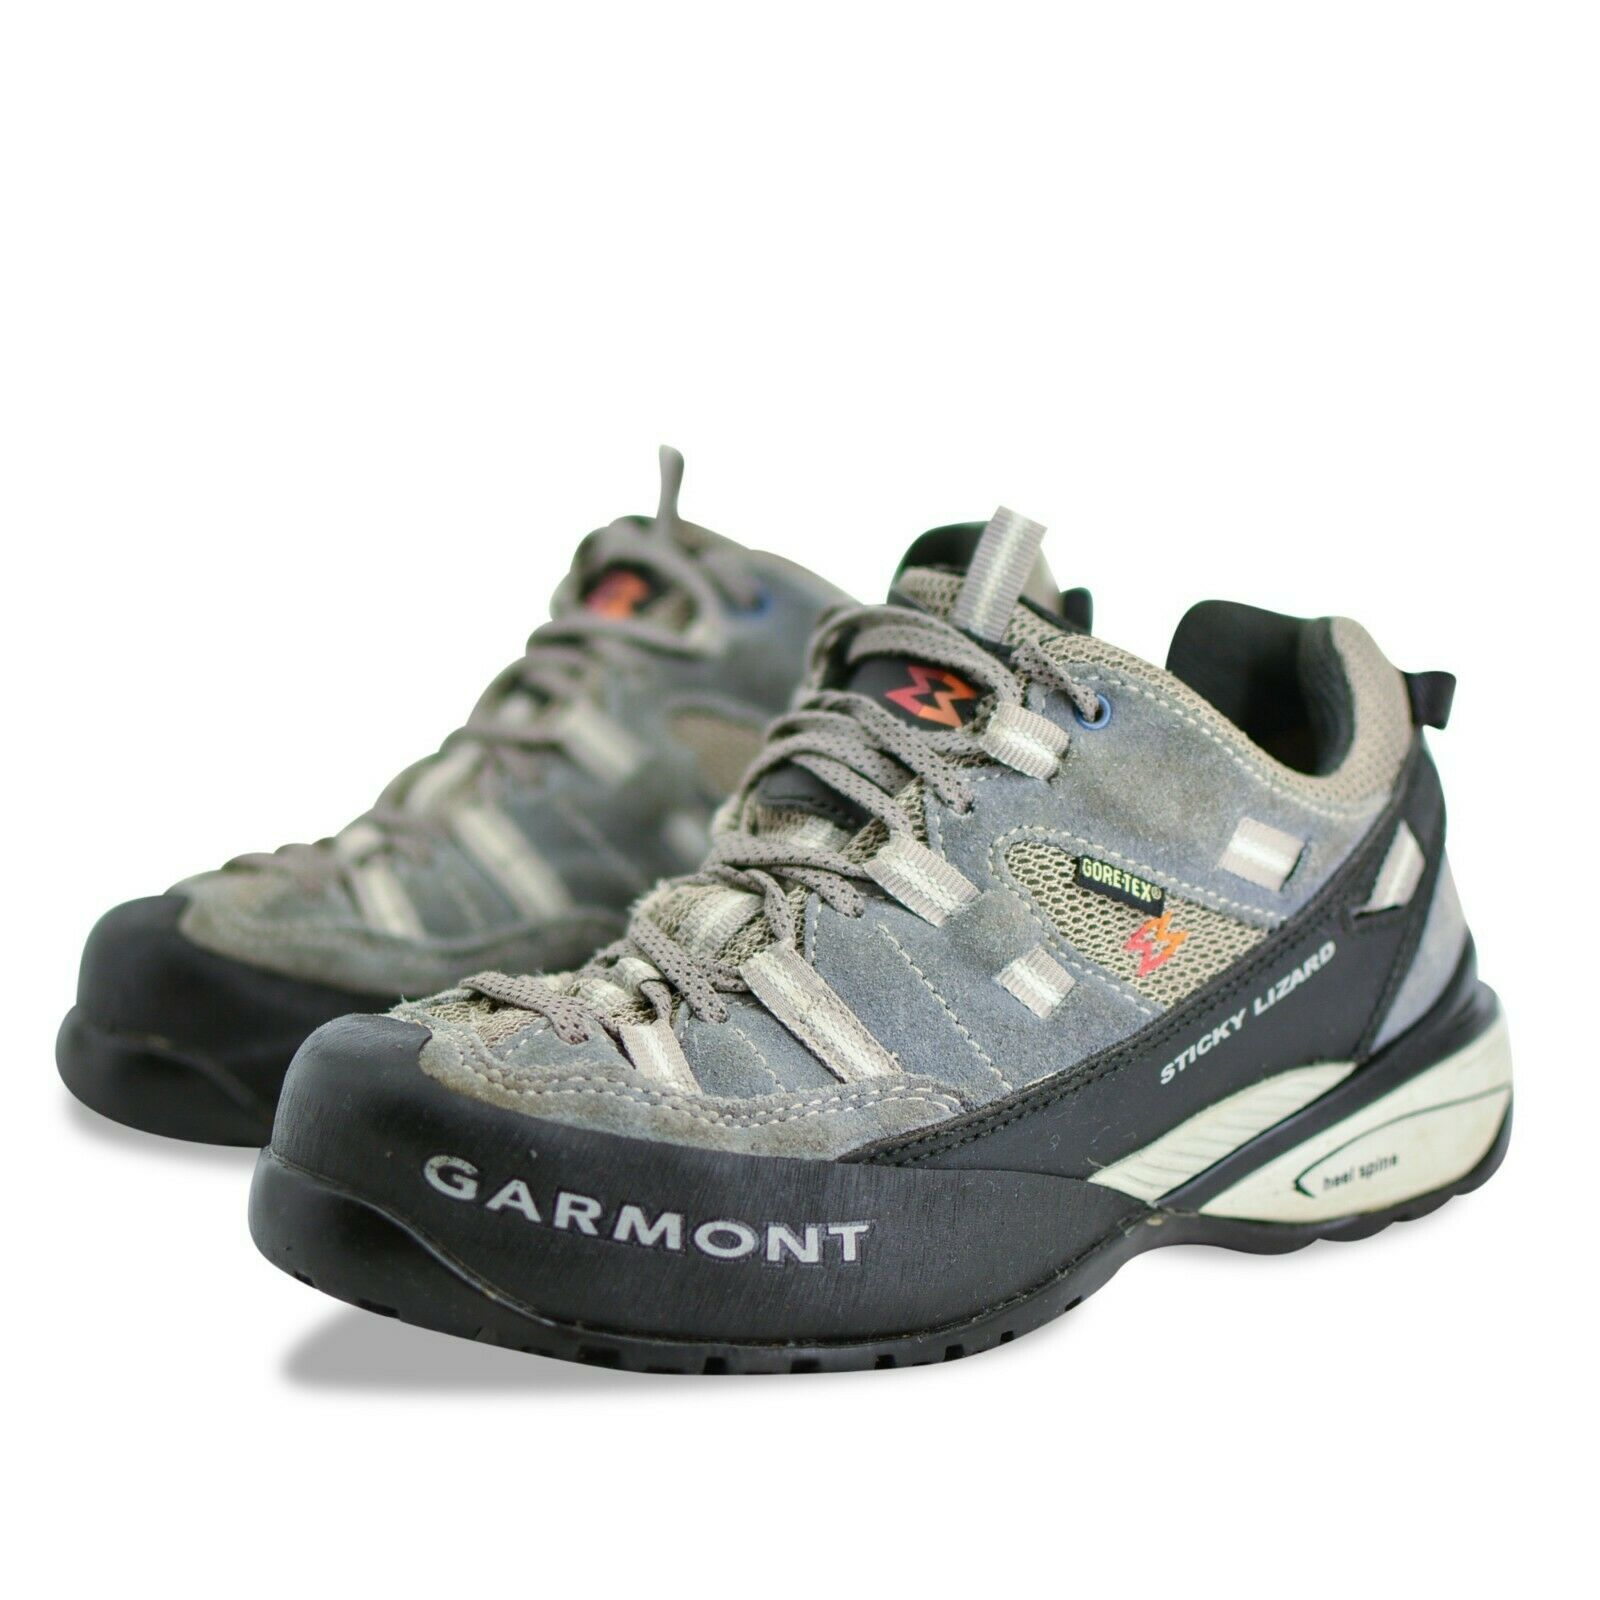 GARMONT Scarpe Stivali Donna Lady Trekking GORE-TEX UK3.5, US5.5 EU36 Autentico